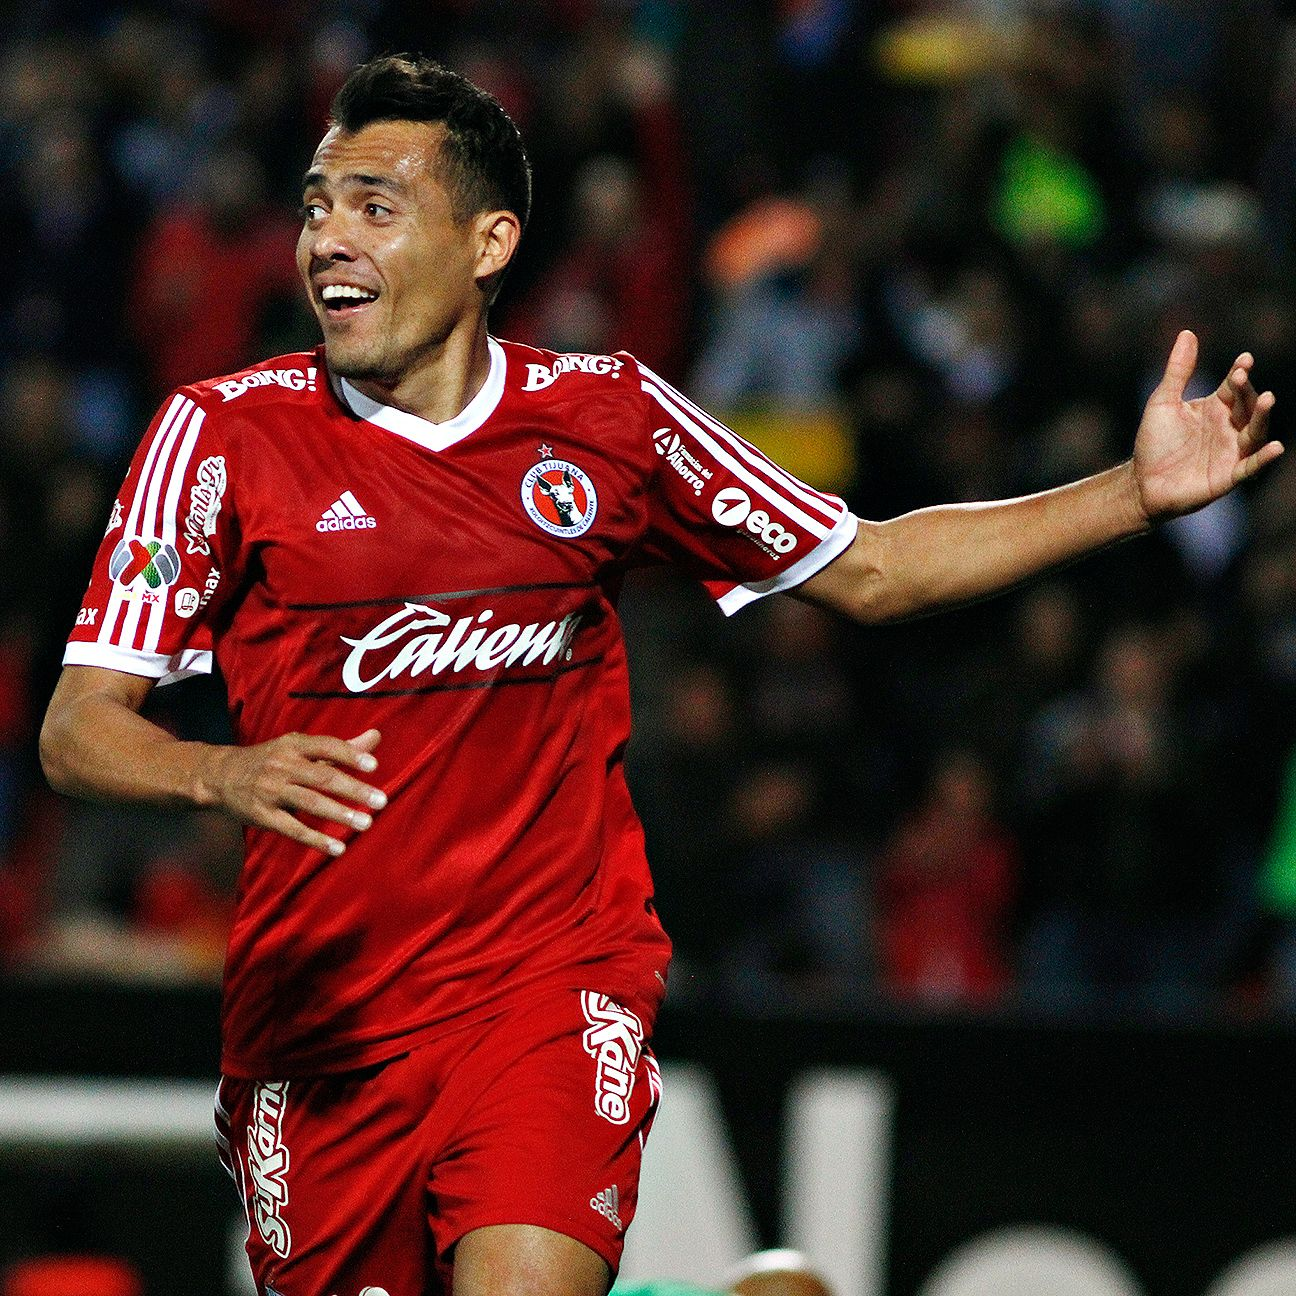 Juan Arango powered Tijuana to a stunning comeback victory over Pachuca on Friday night.